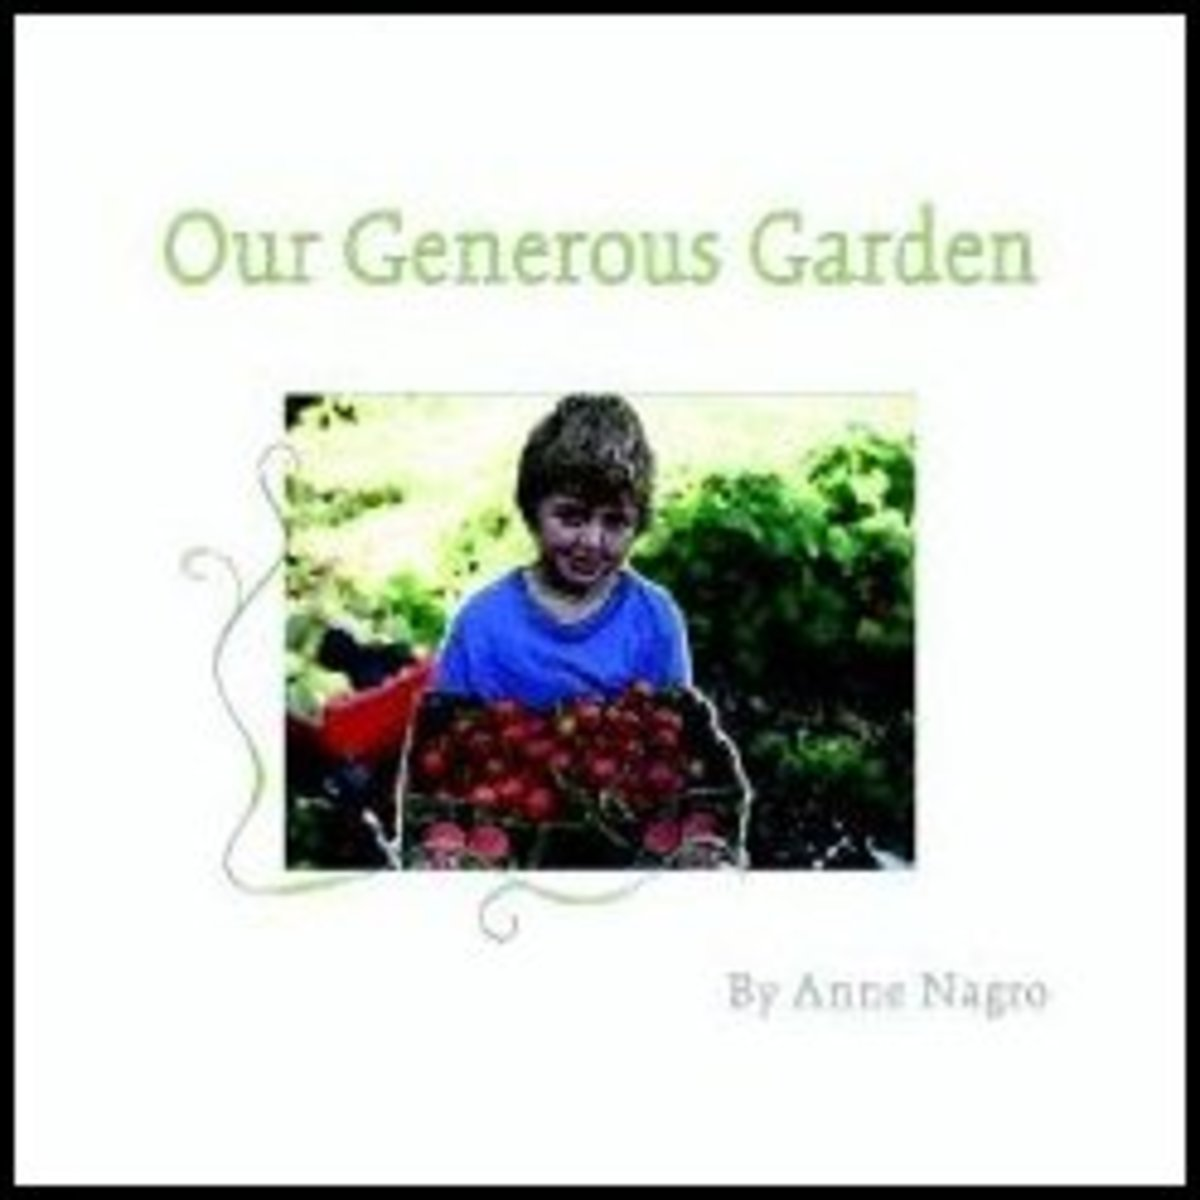 Our Generous Garden, by Anne Nagro